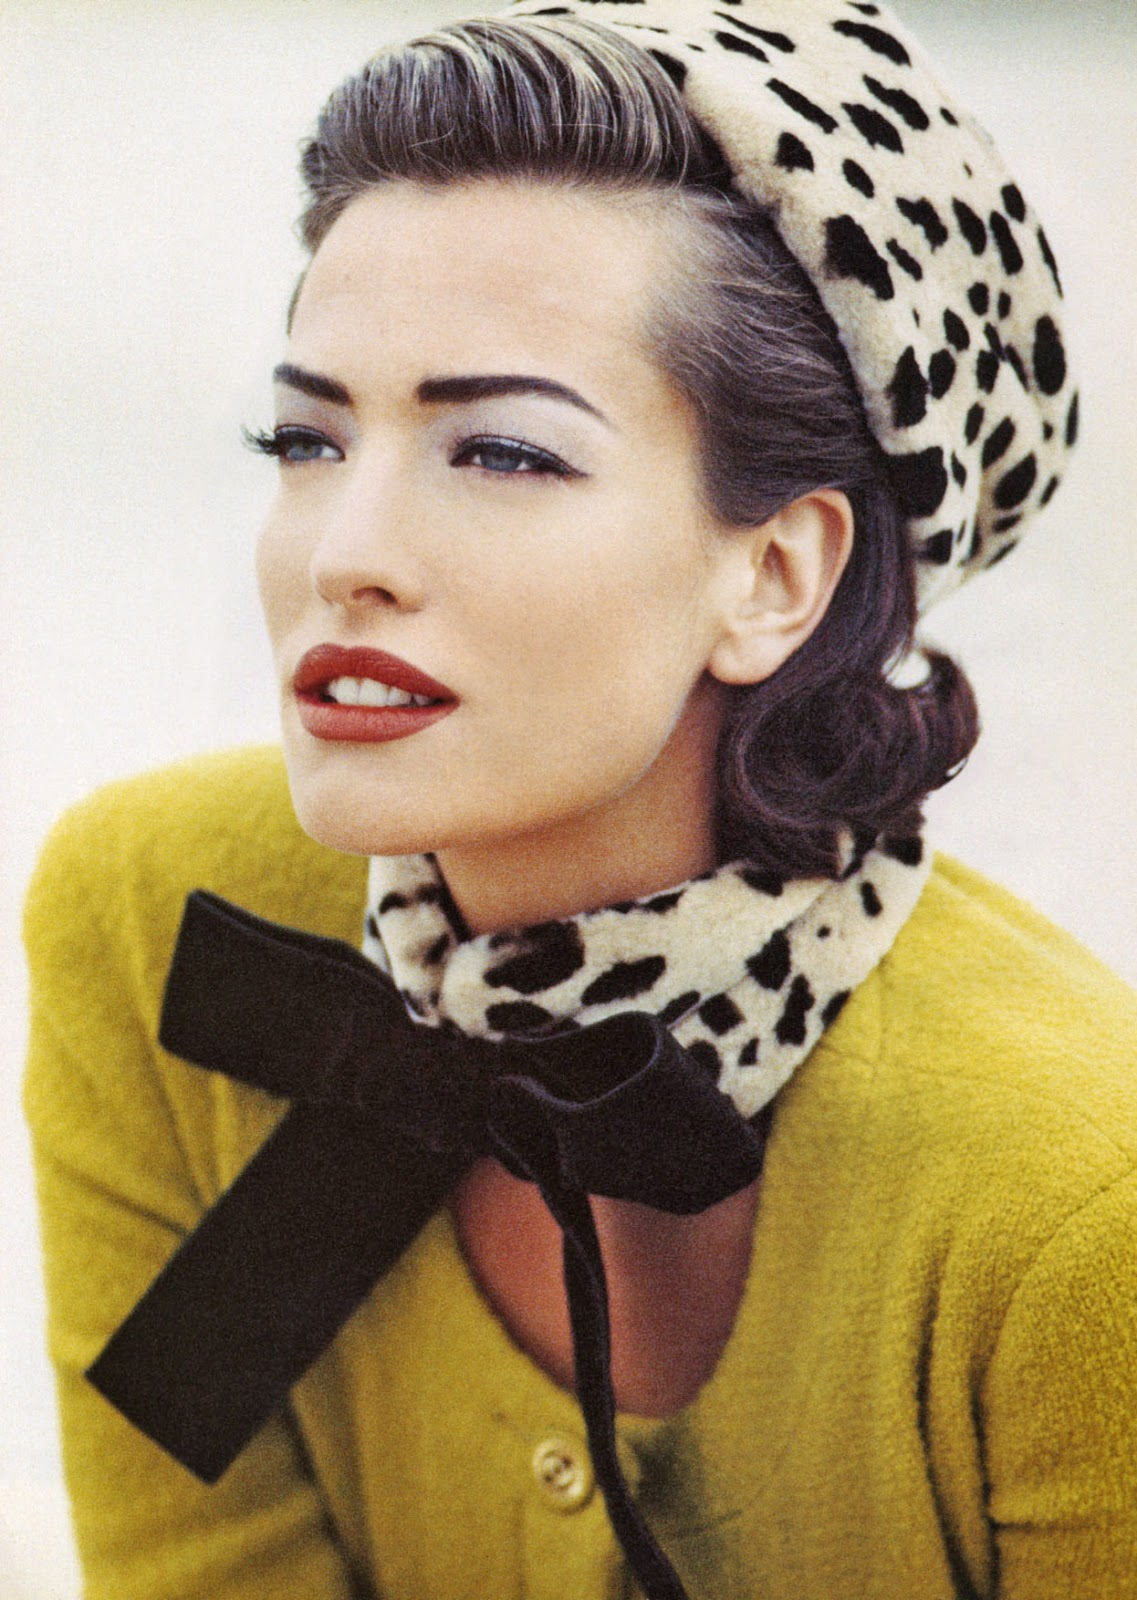 http://forums.thefashionspot.com/f109/retrospecitive-vogue-uk-under-elizabeth-tilberis-1987-1992-a-84270.html